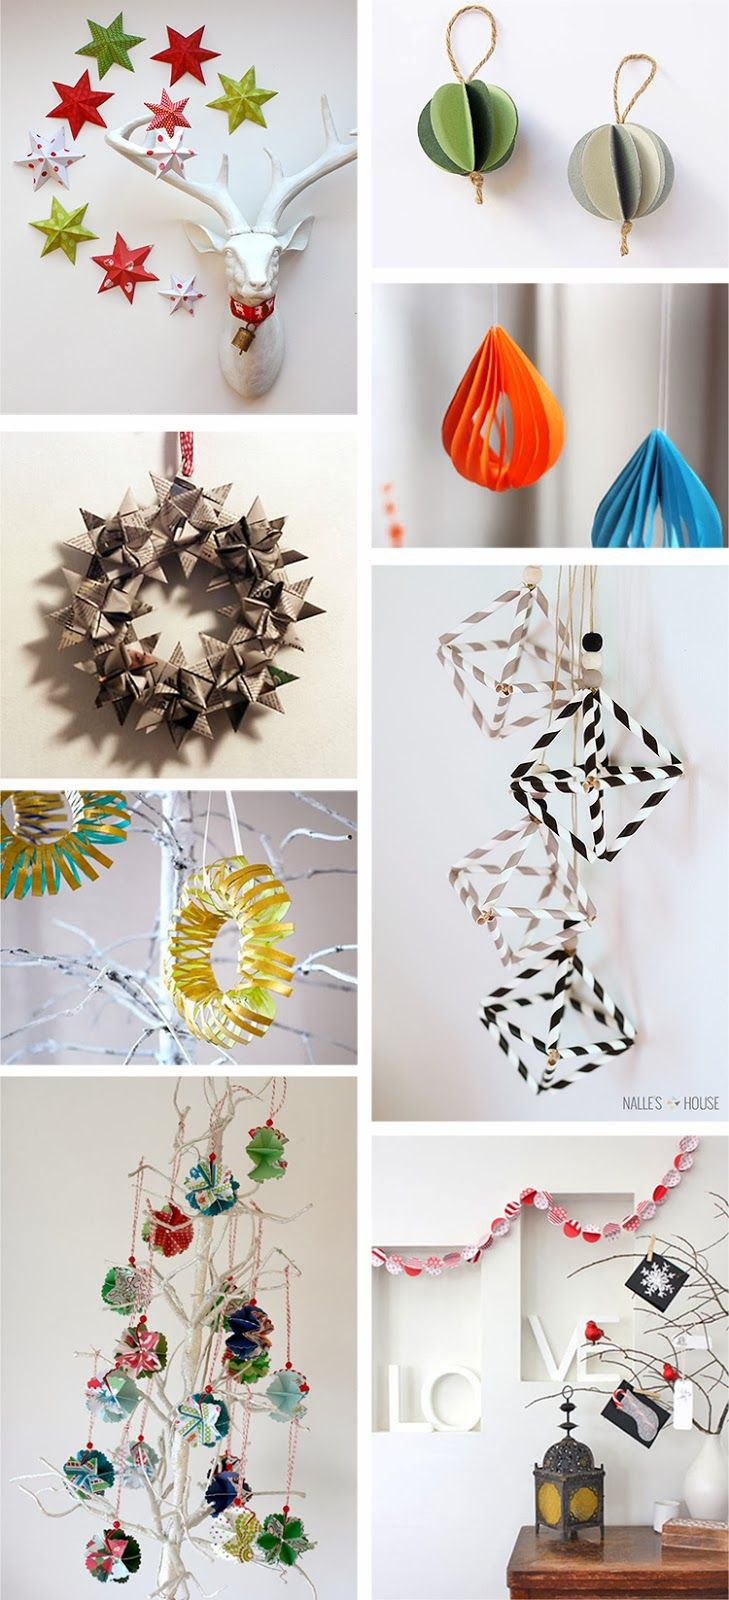 Gorgeous Christmas Decorations by Ohoh Blog - diy and crafts #diy #xmas #decor